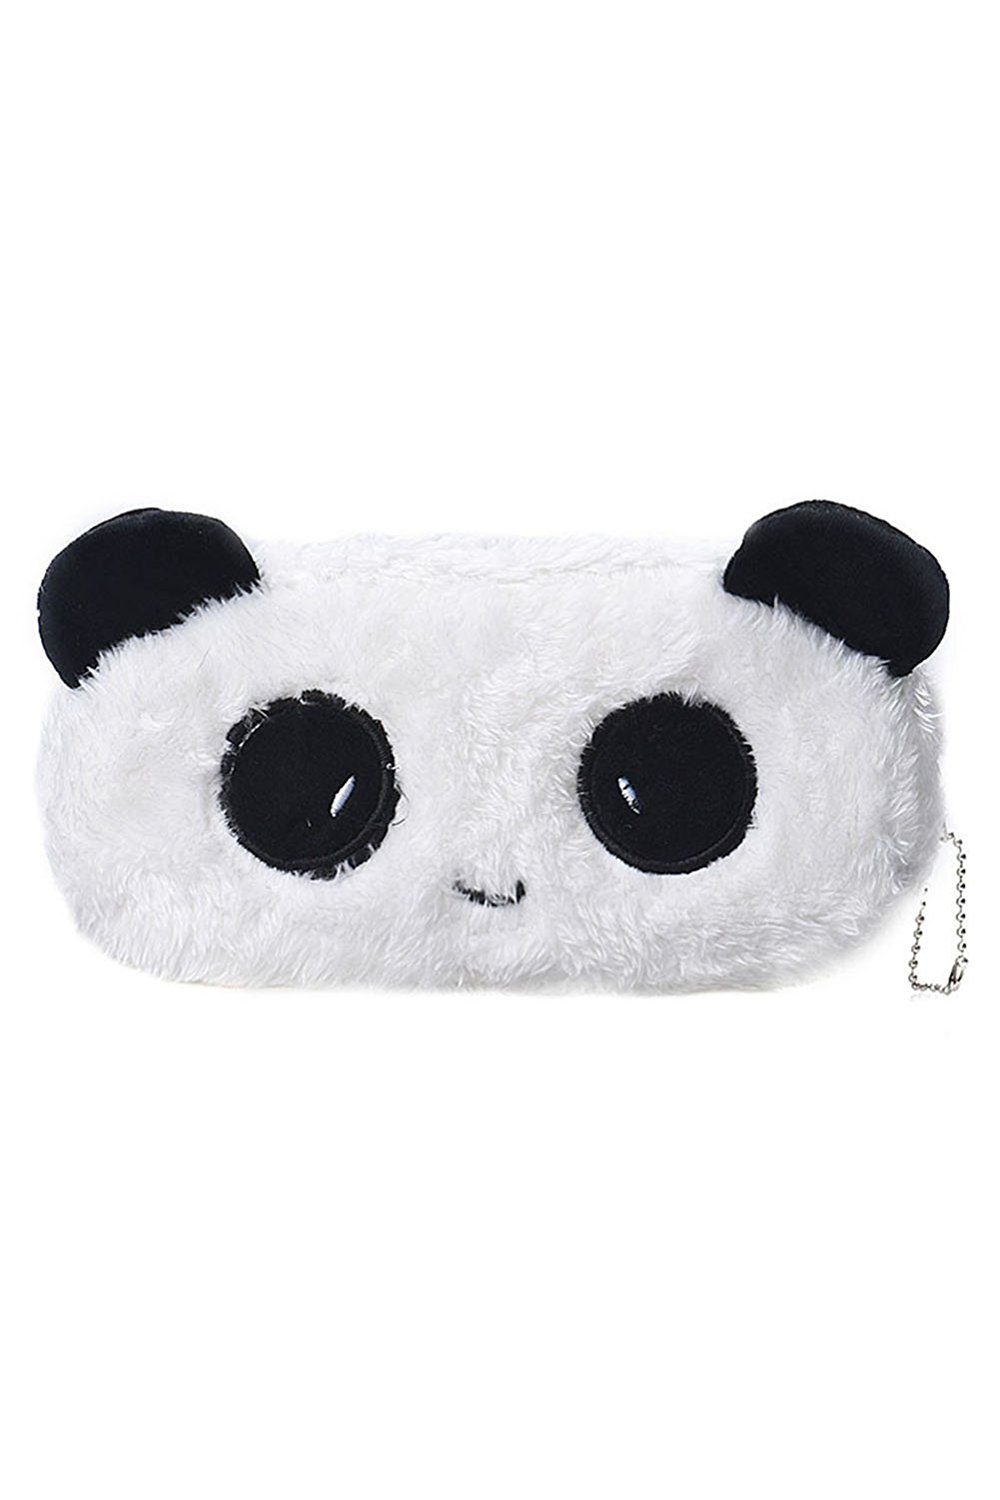 Beauty*Top*Picks NEW Cute Cartoon Kawaii Pencil Case Plush Large PEN BAG Kids School Supplies (panda)